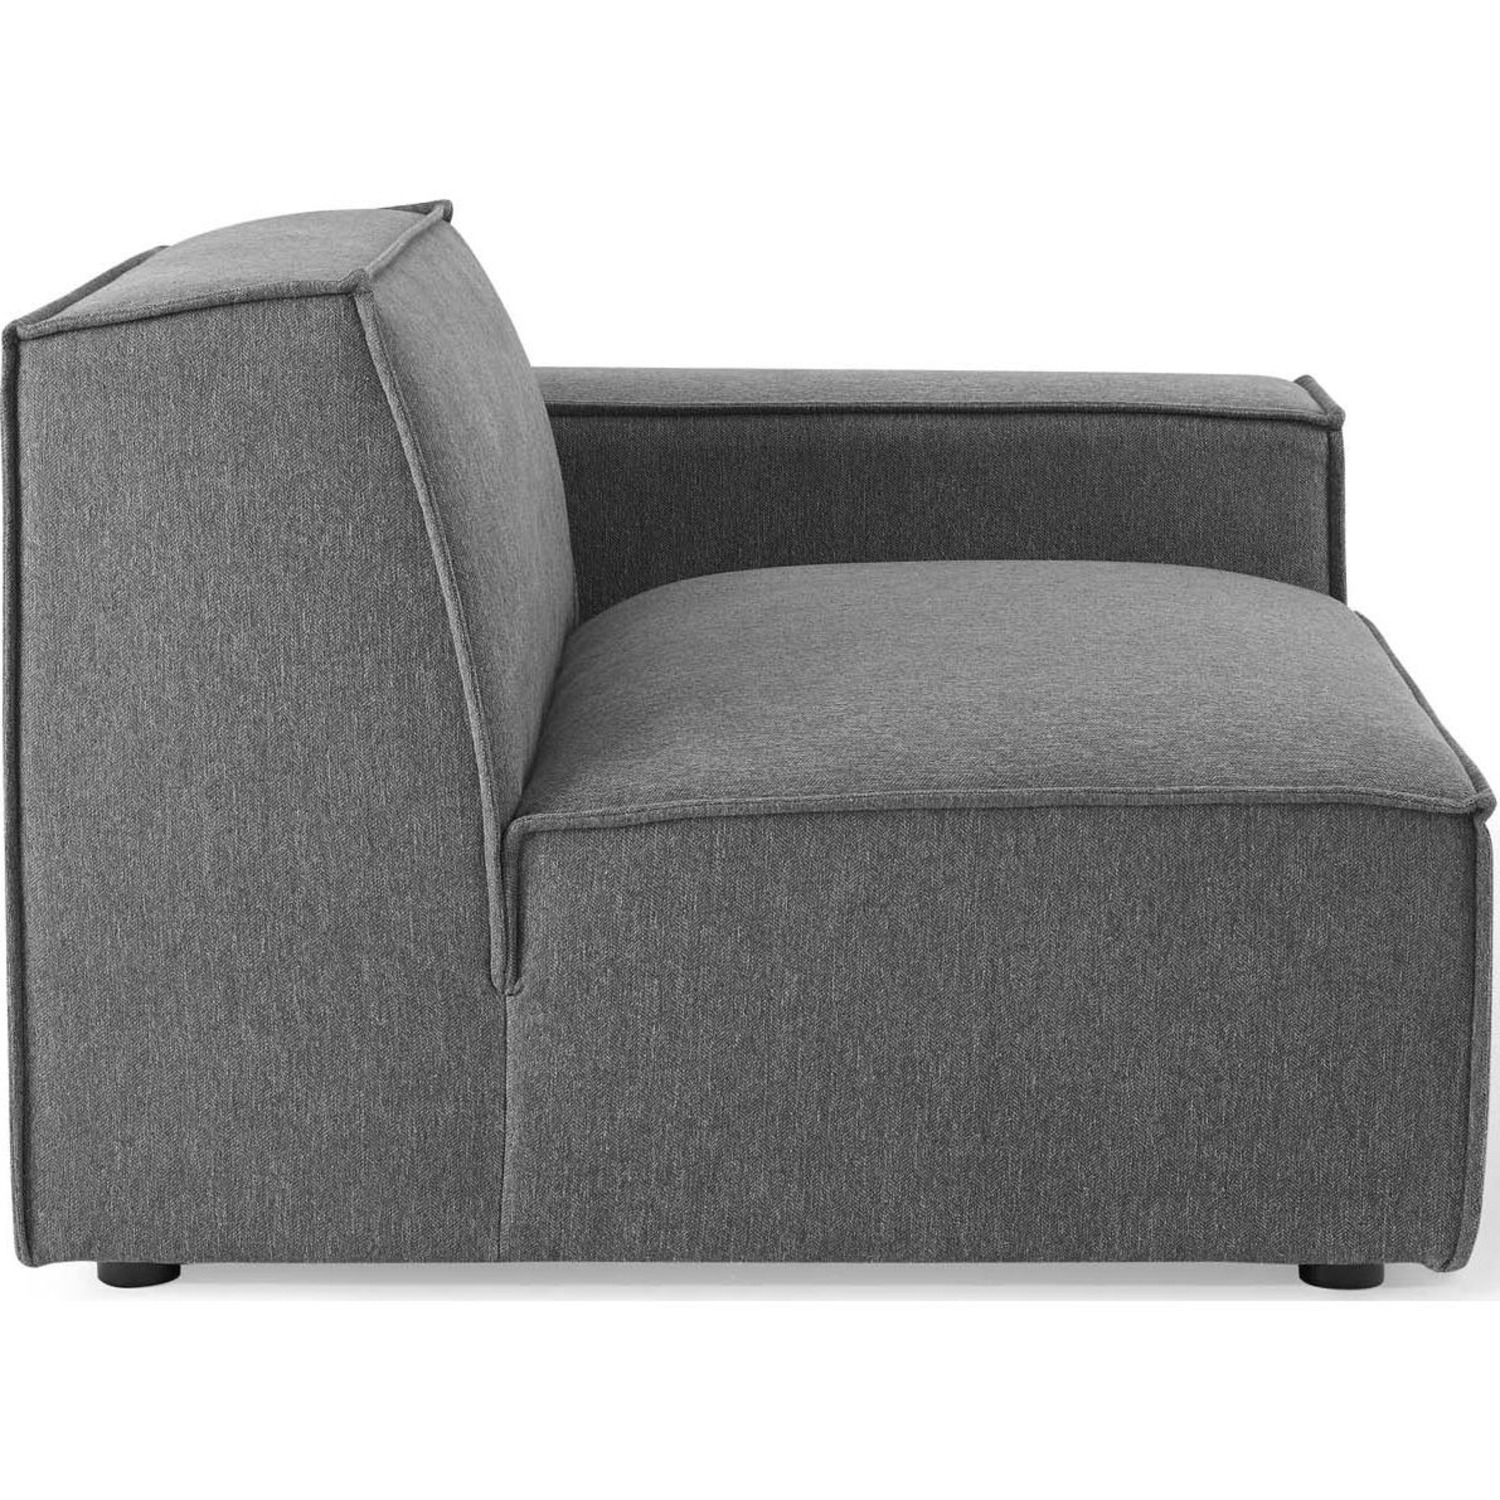 4-Piece Sectional Sofa In Charcoal Foam Padding - image-3